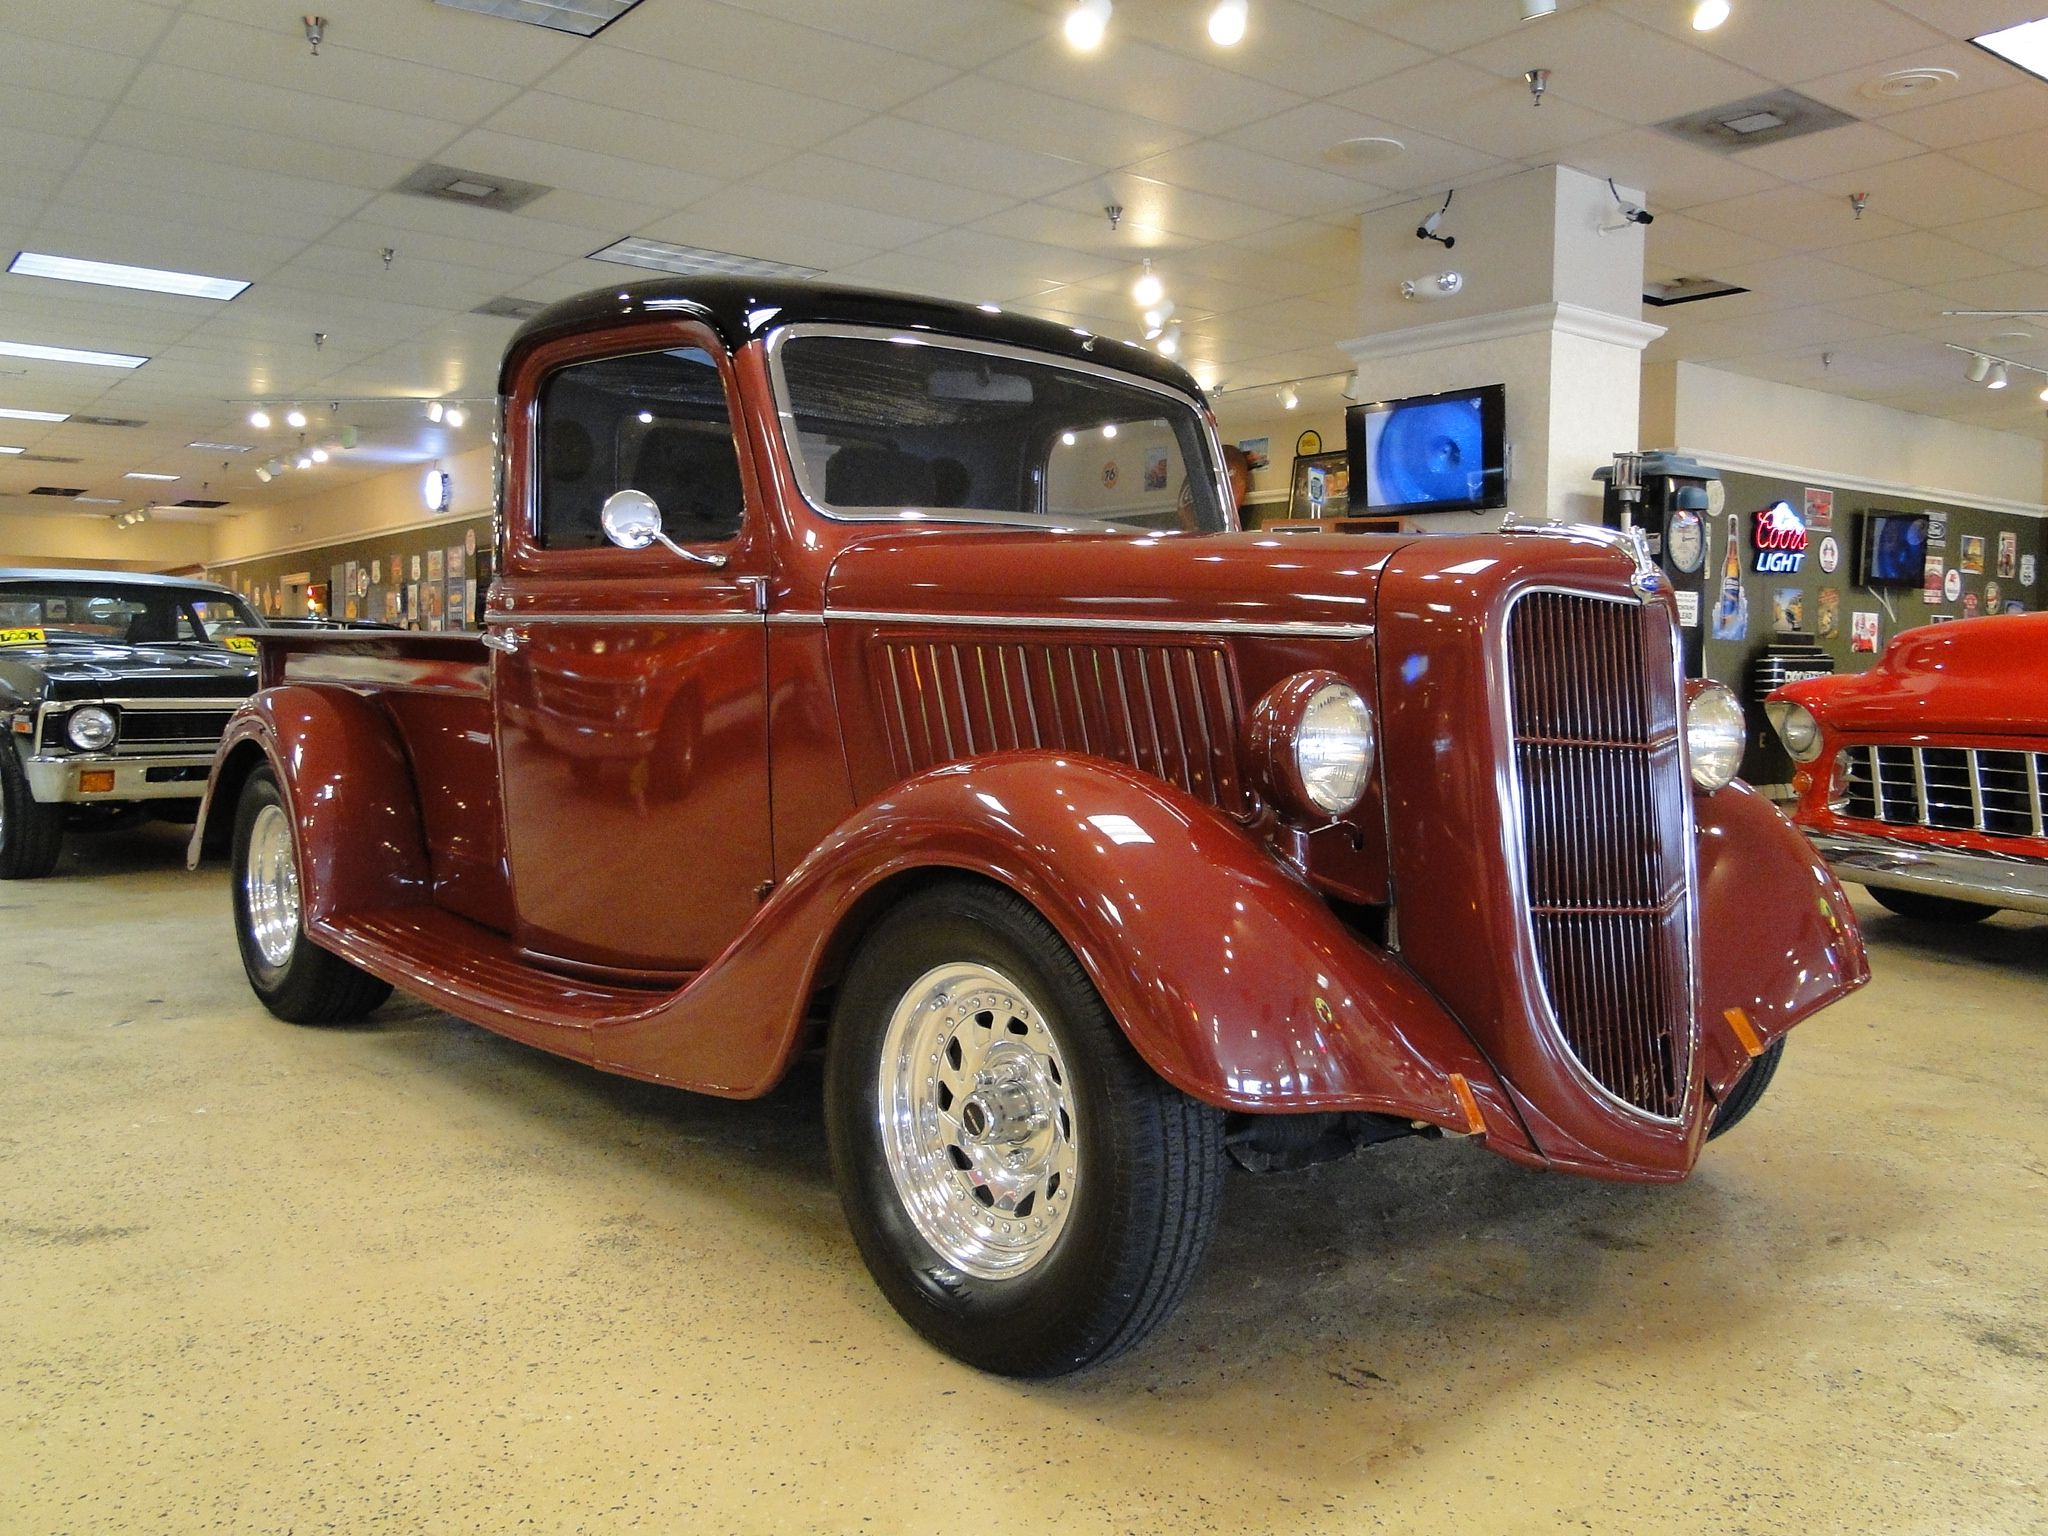 1936 Ford Pick-up Truck   Old Ford Trucks   Pinterest   Ford, Ford ...